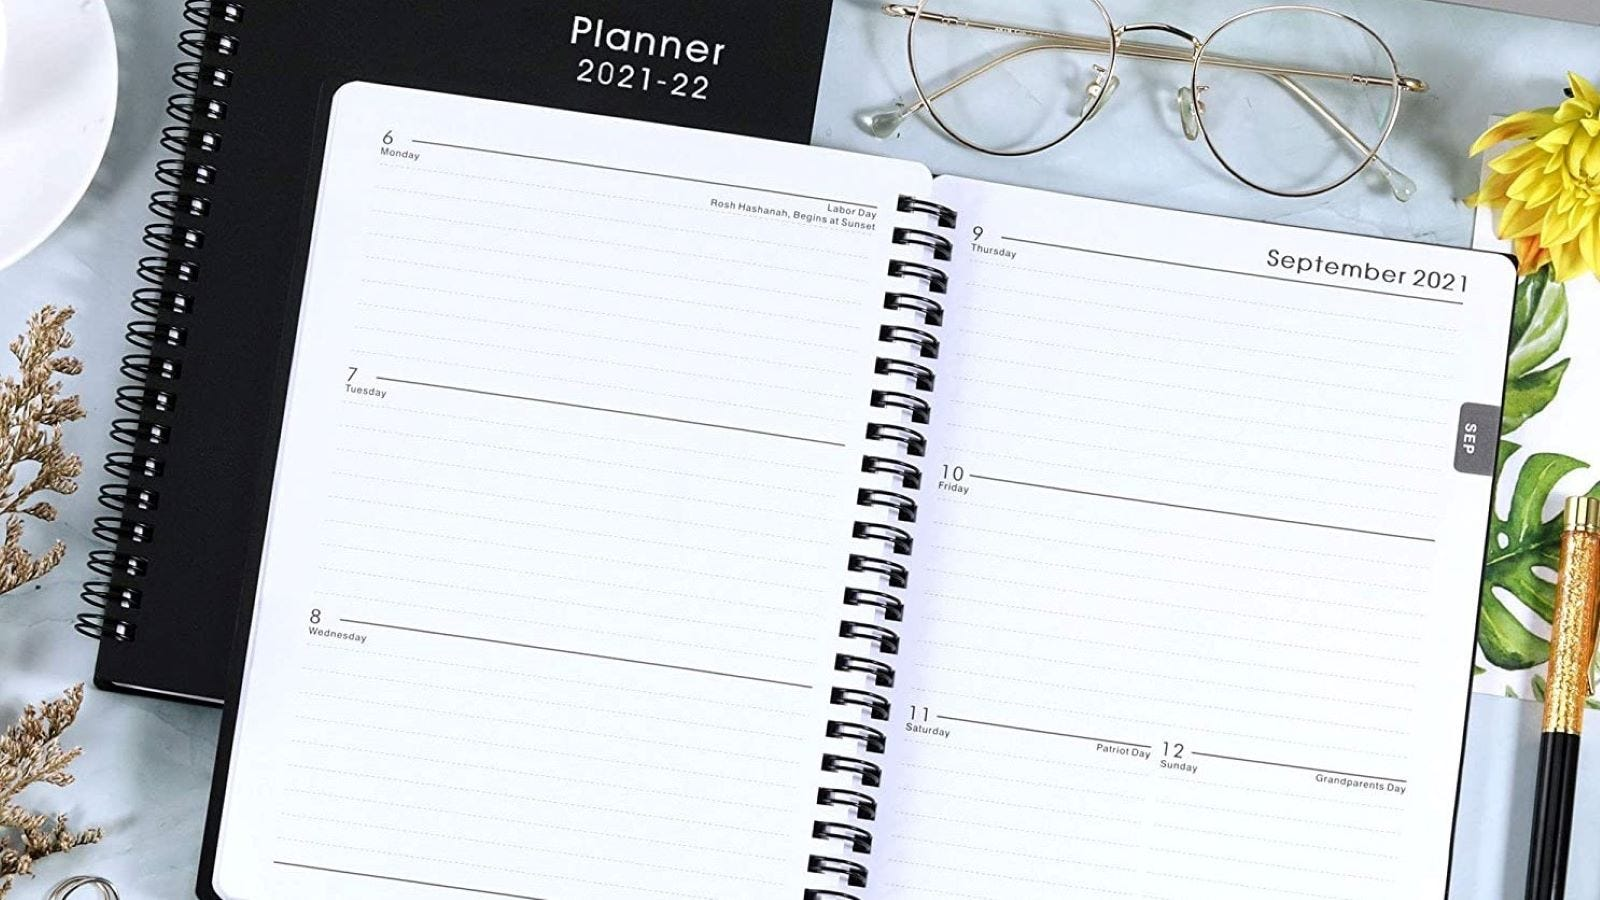 An open Maalbok Academic 2021-22 Planner showing a two-page spread in September.